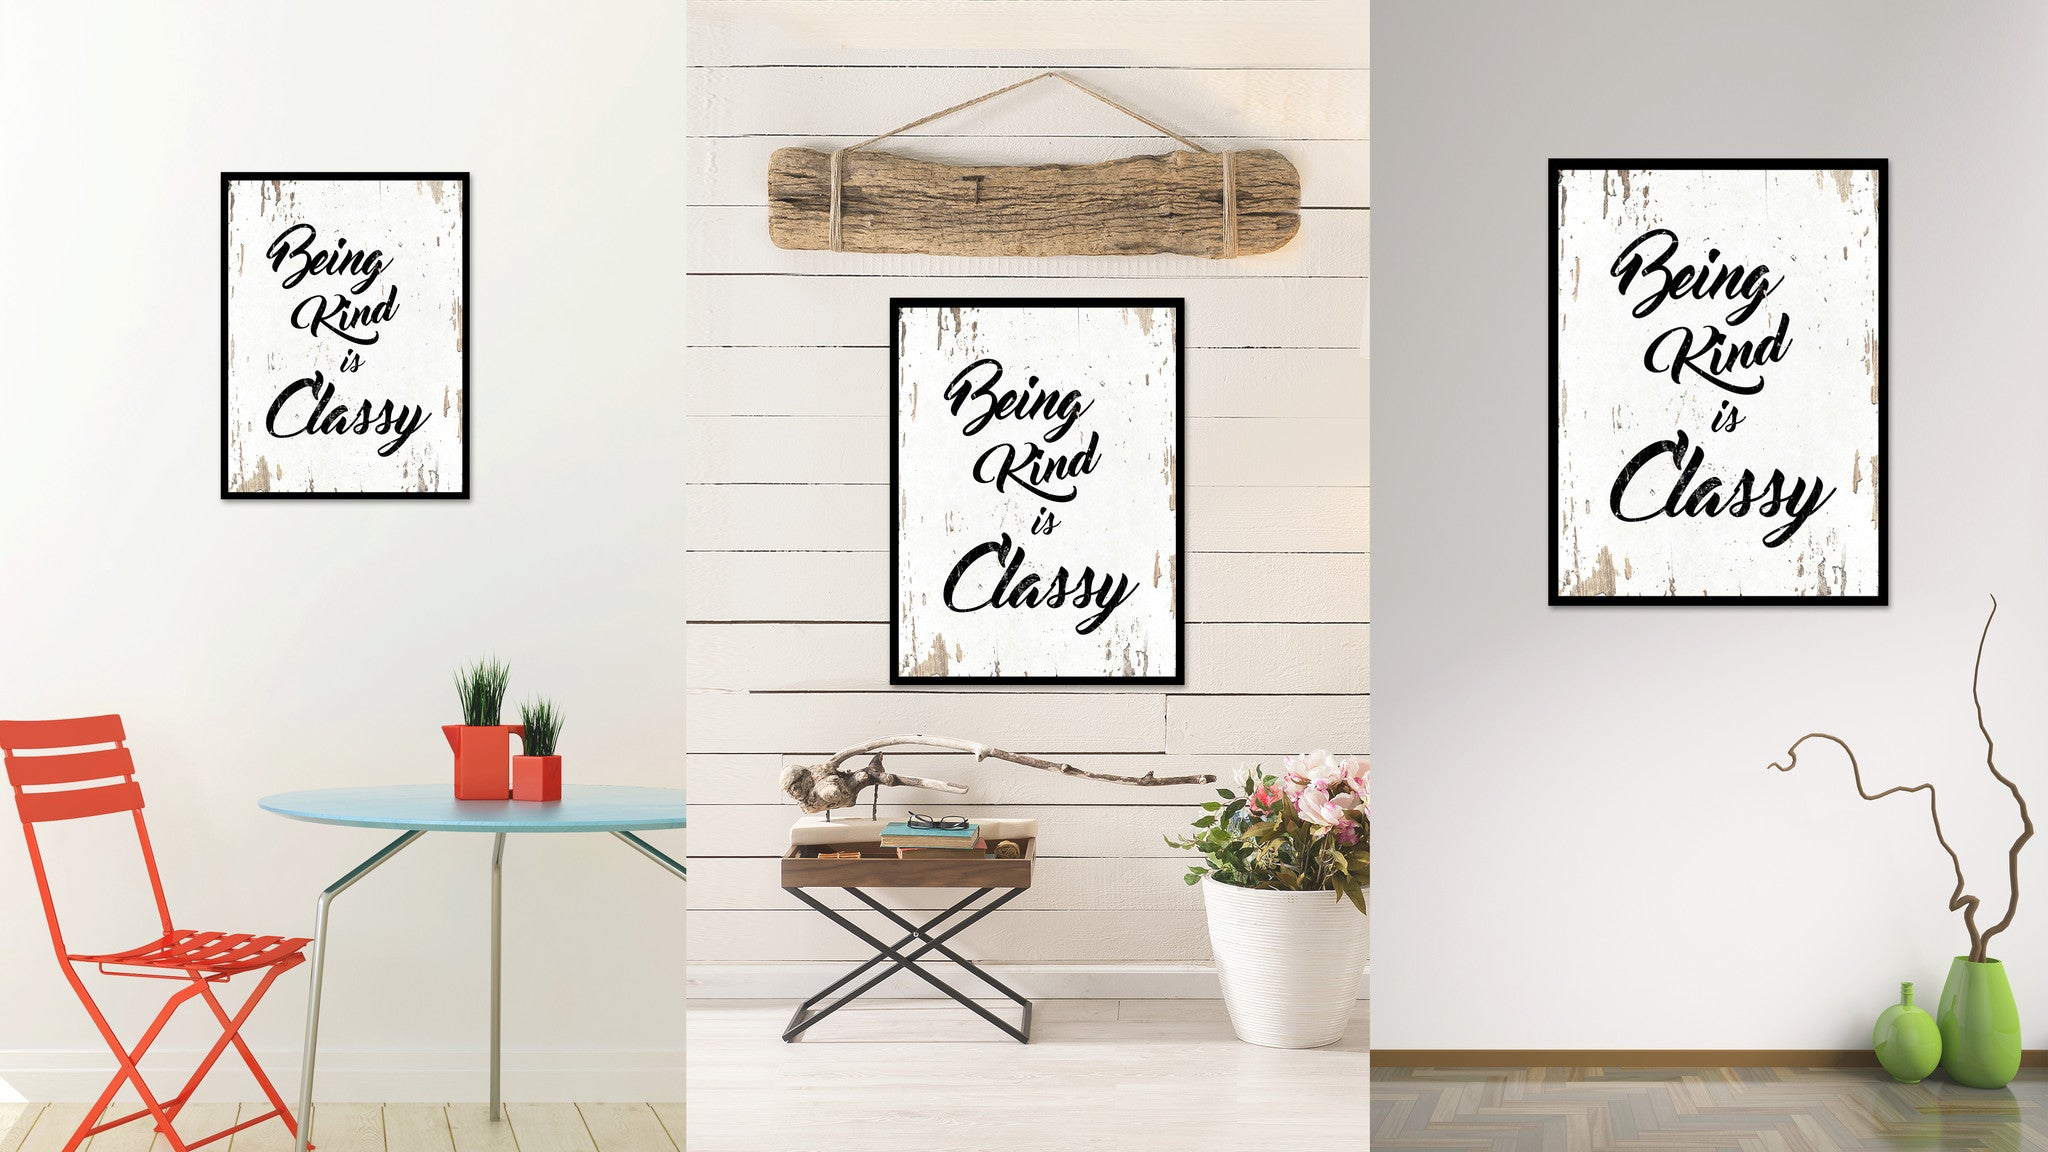 Being Kind Is Classy Motivation Quote Saying Gift Ideas Home Decor Wall Art 111466